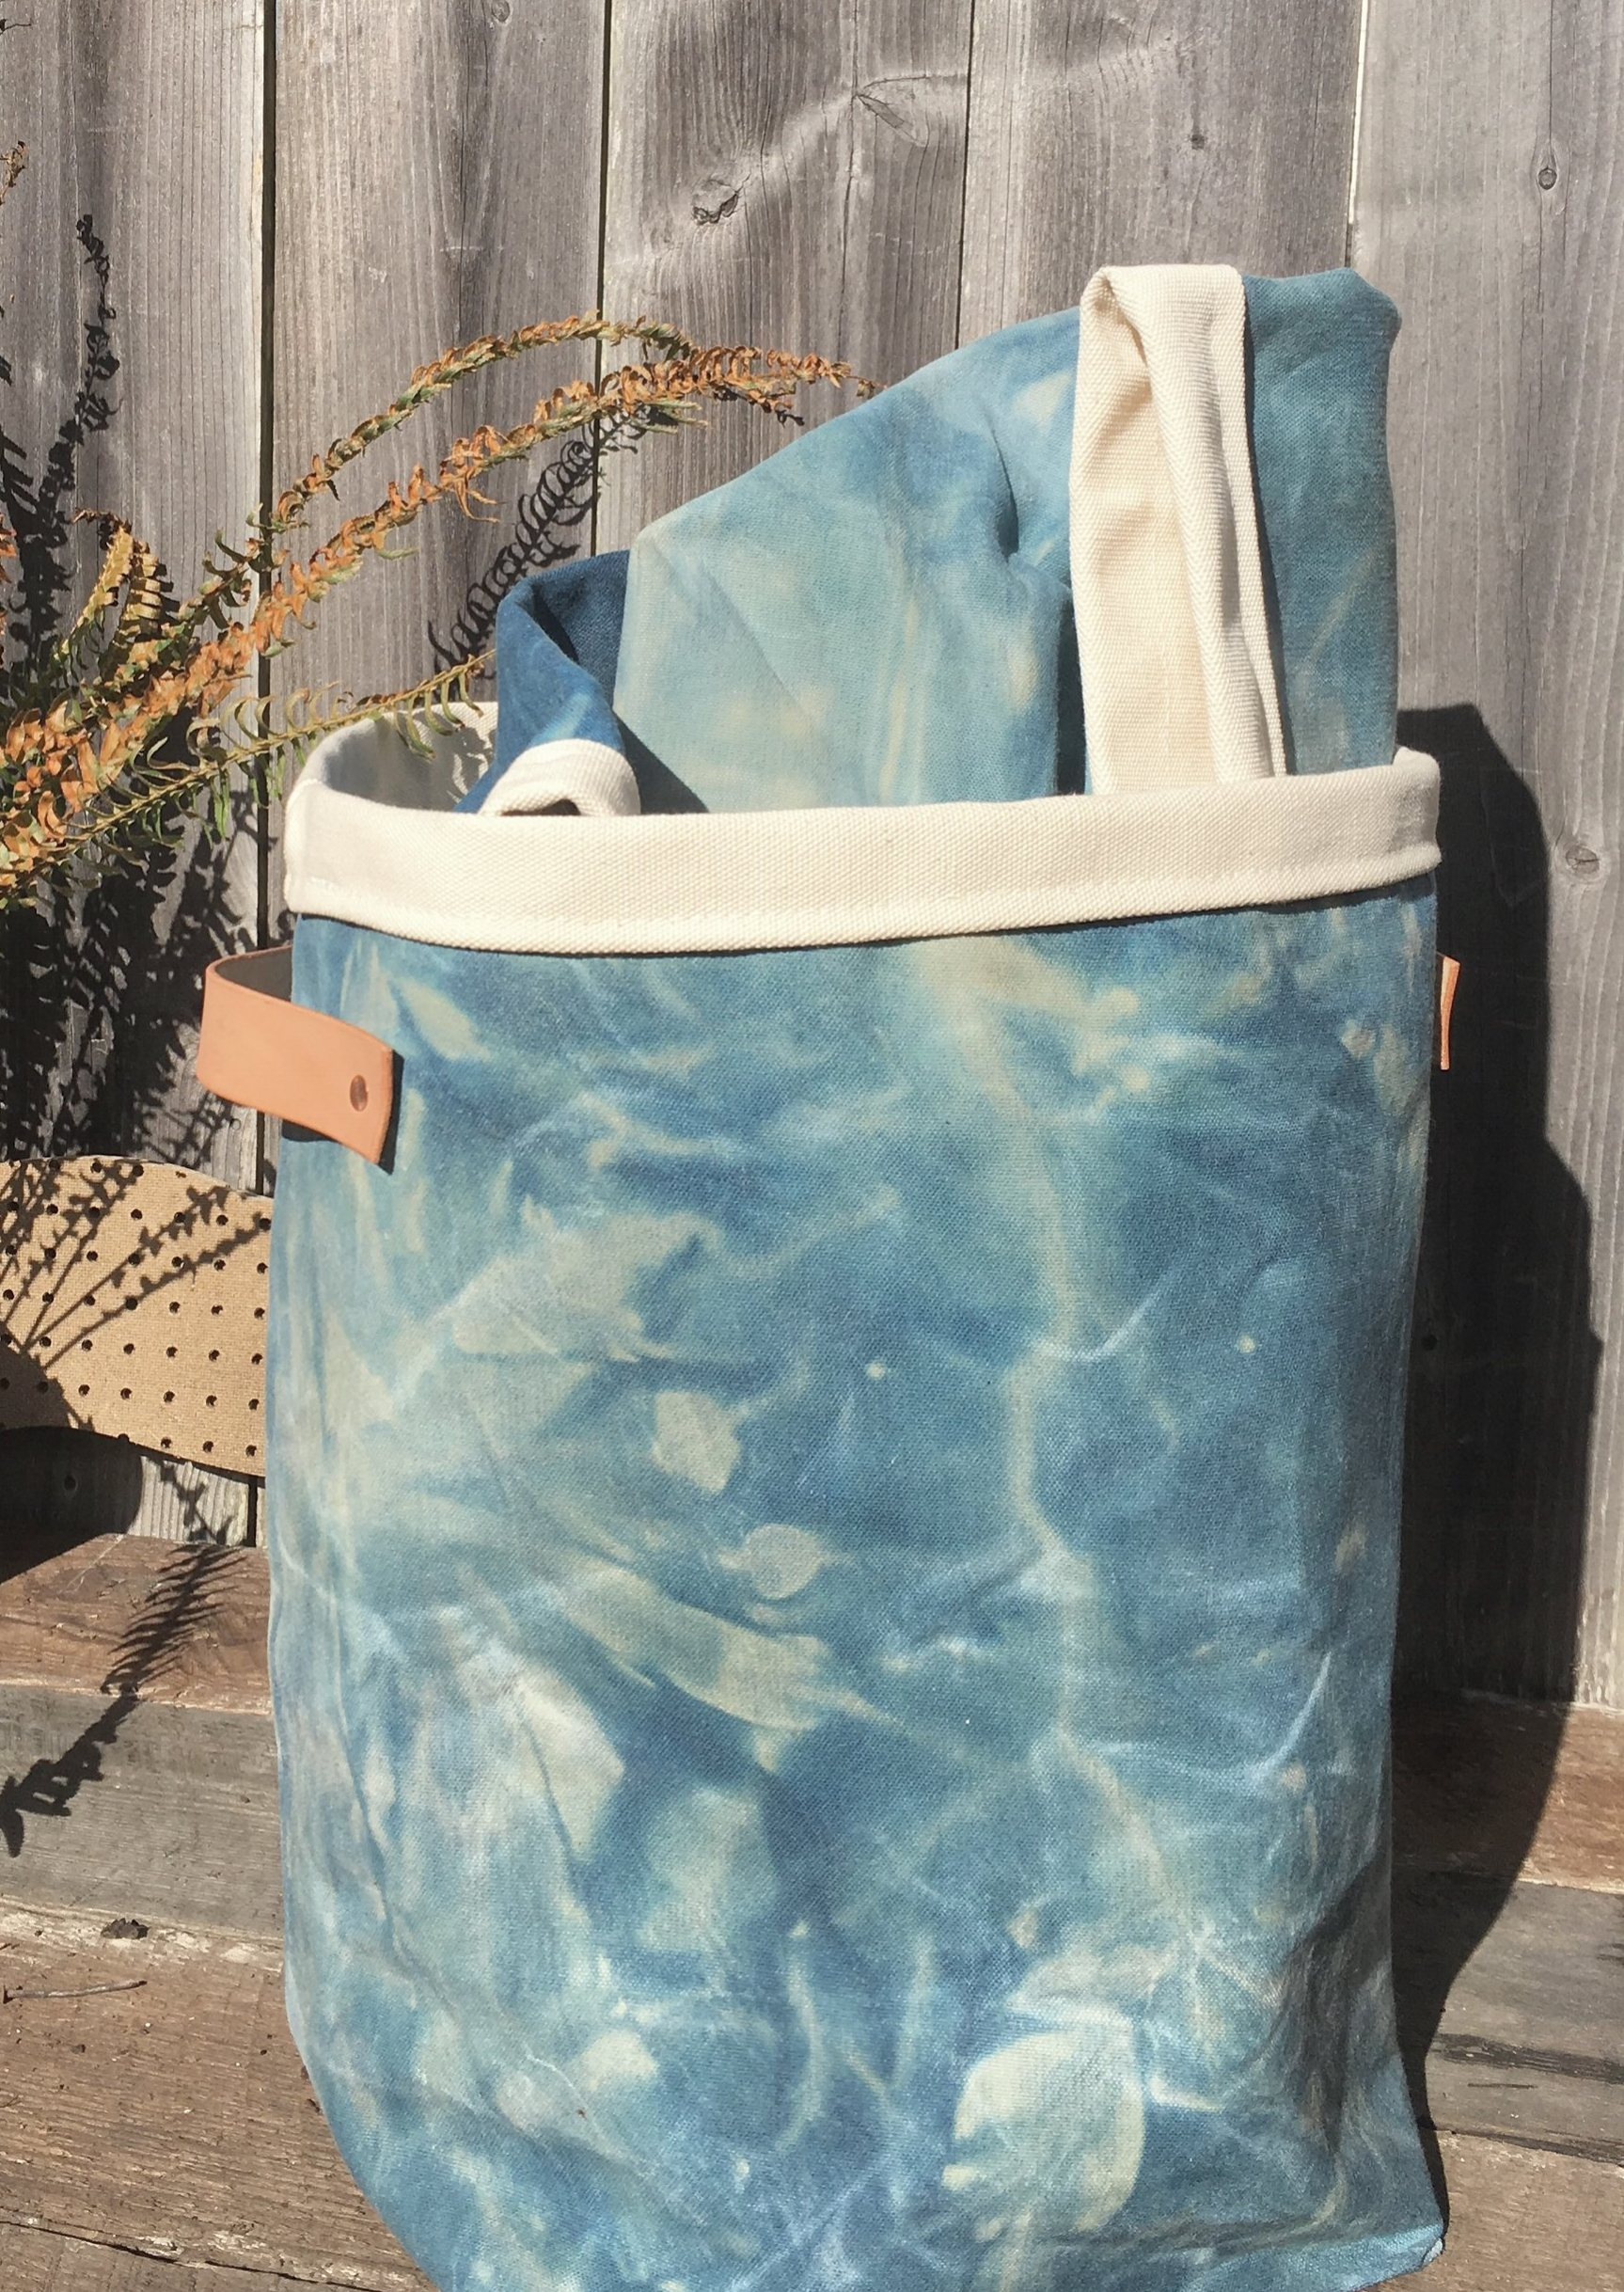 Laundry basket - Indigo dye finished with Beeswax on Canvas